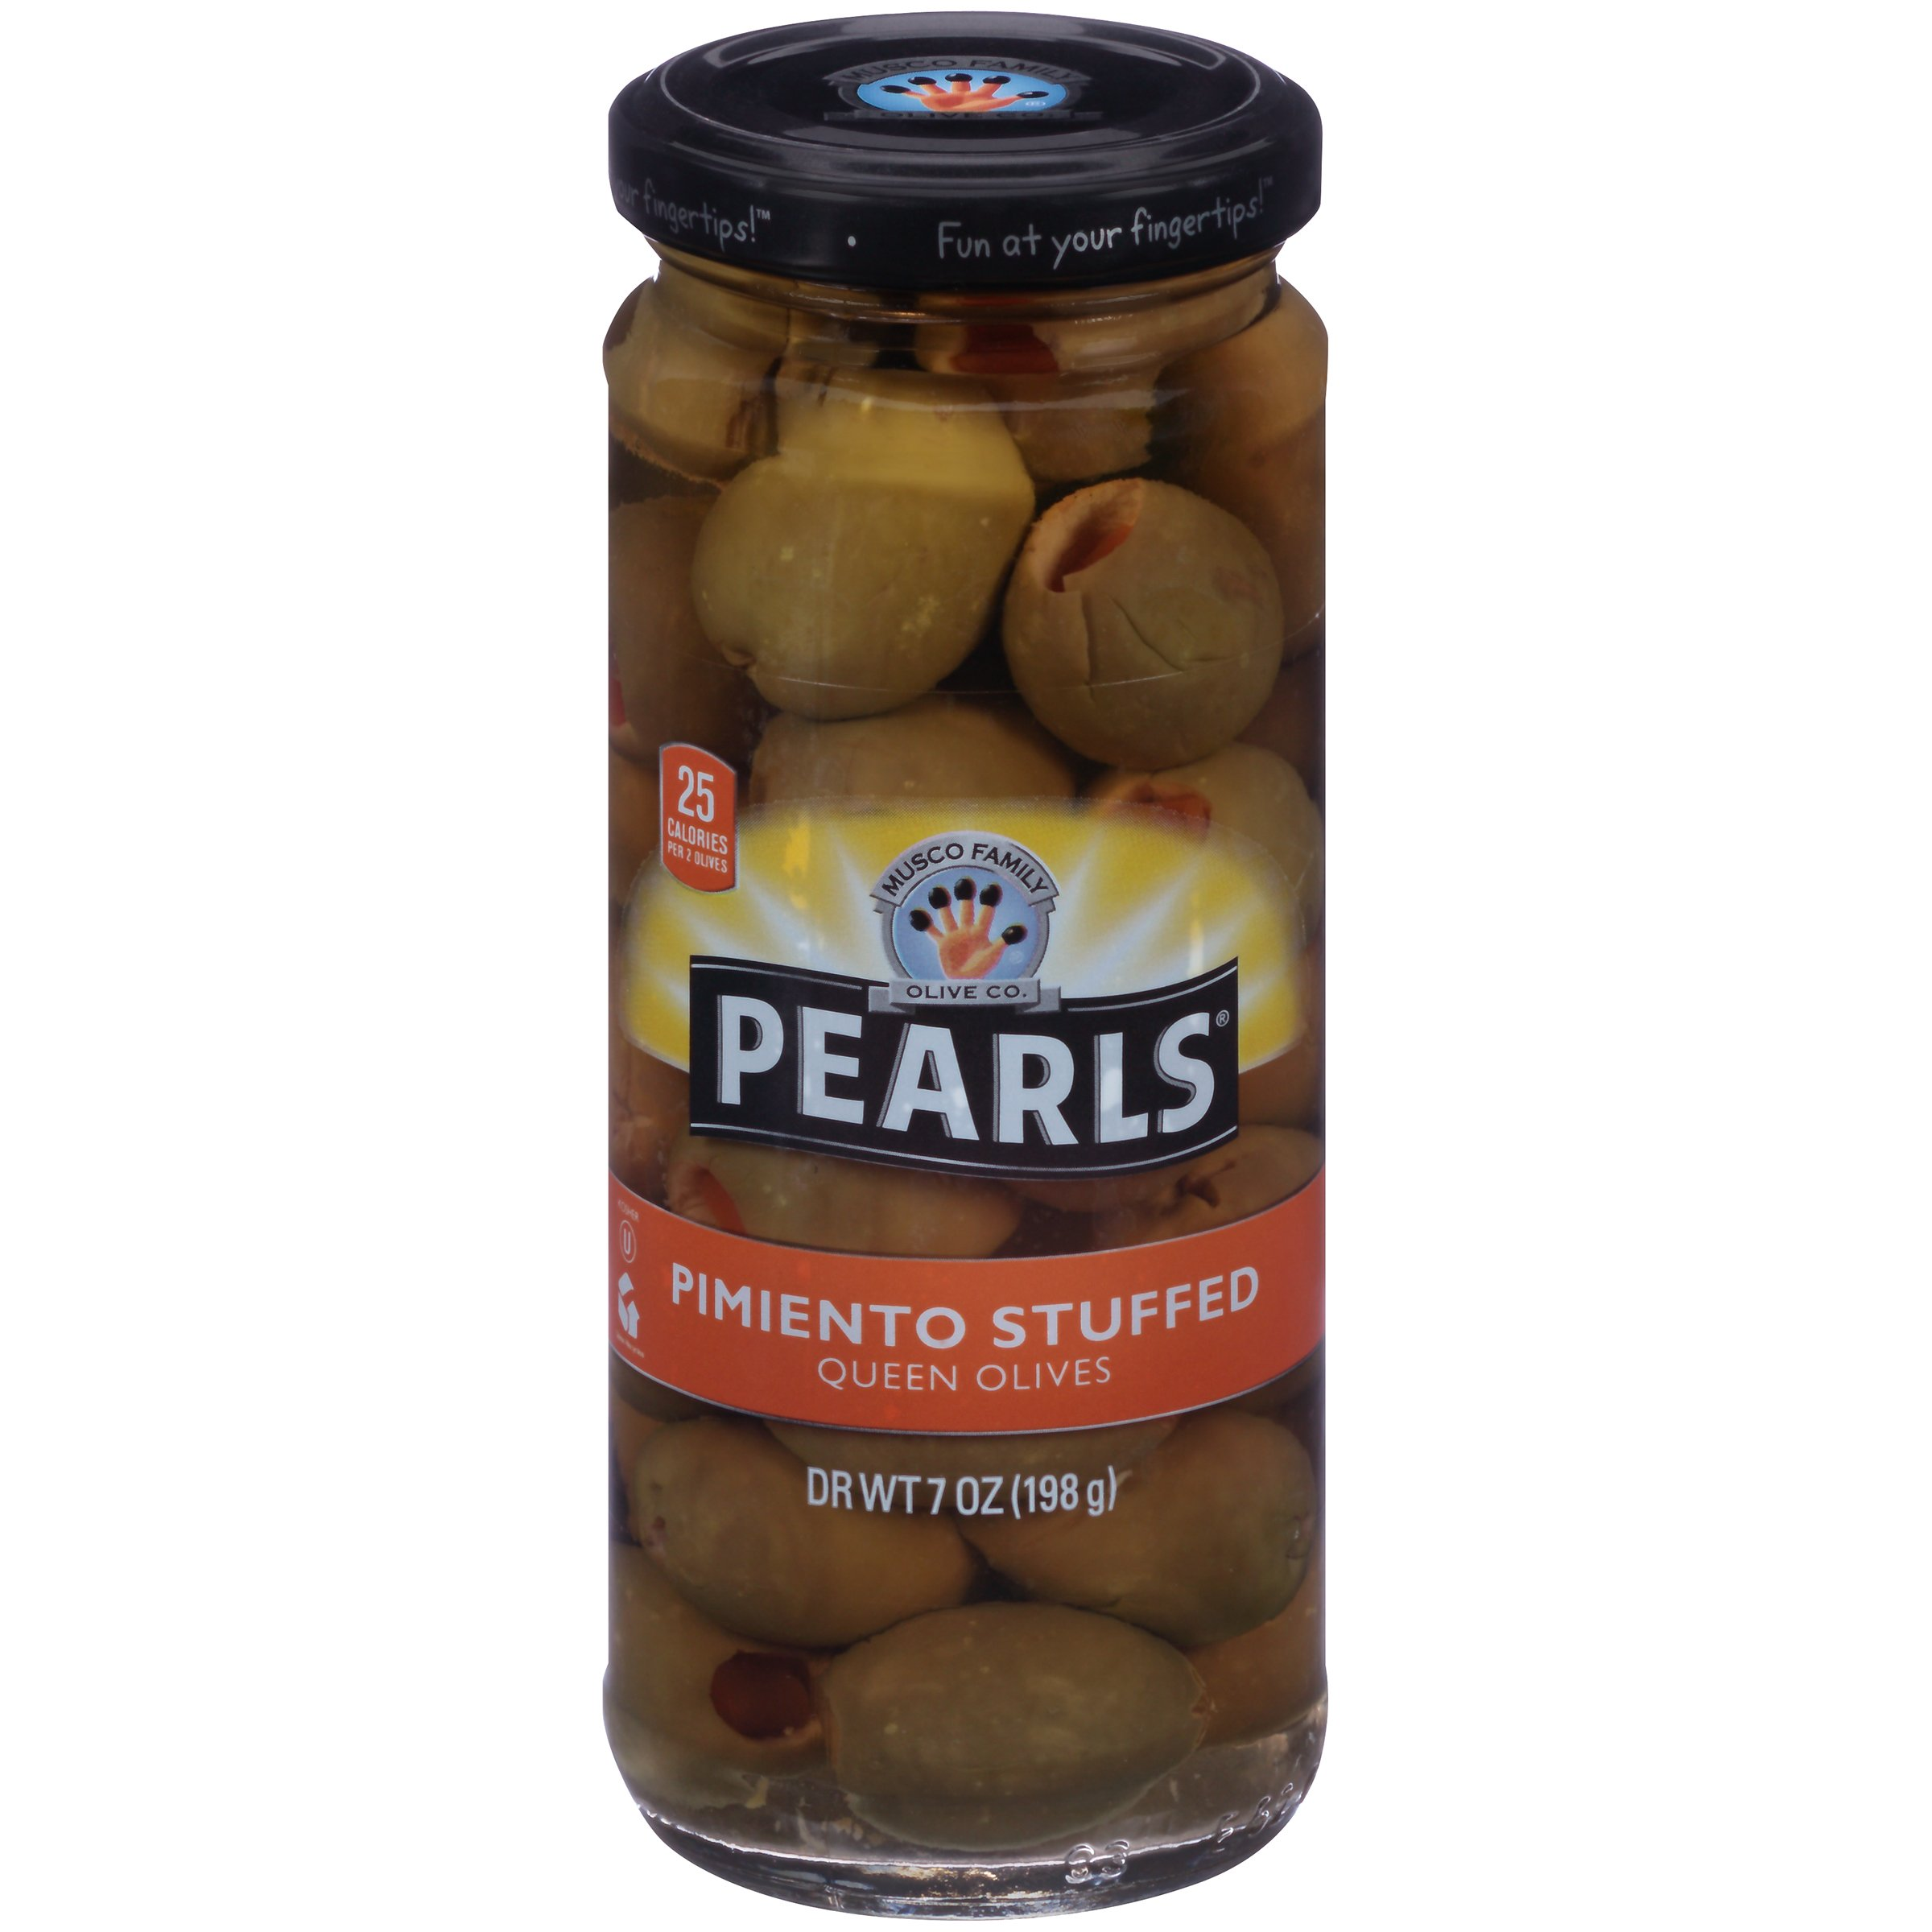 Pearls (6) 7oz Pimiento Stuffed Queen Olives